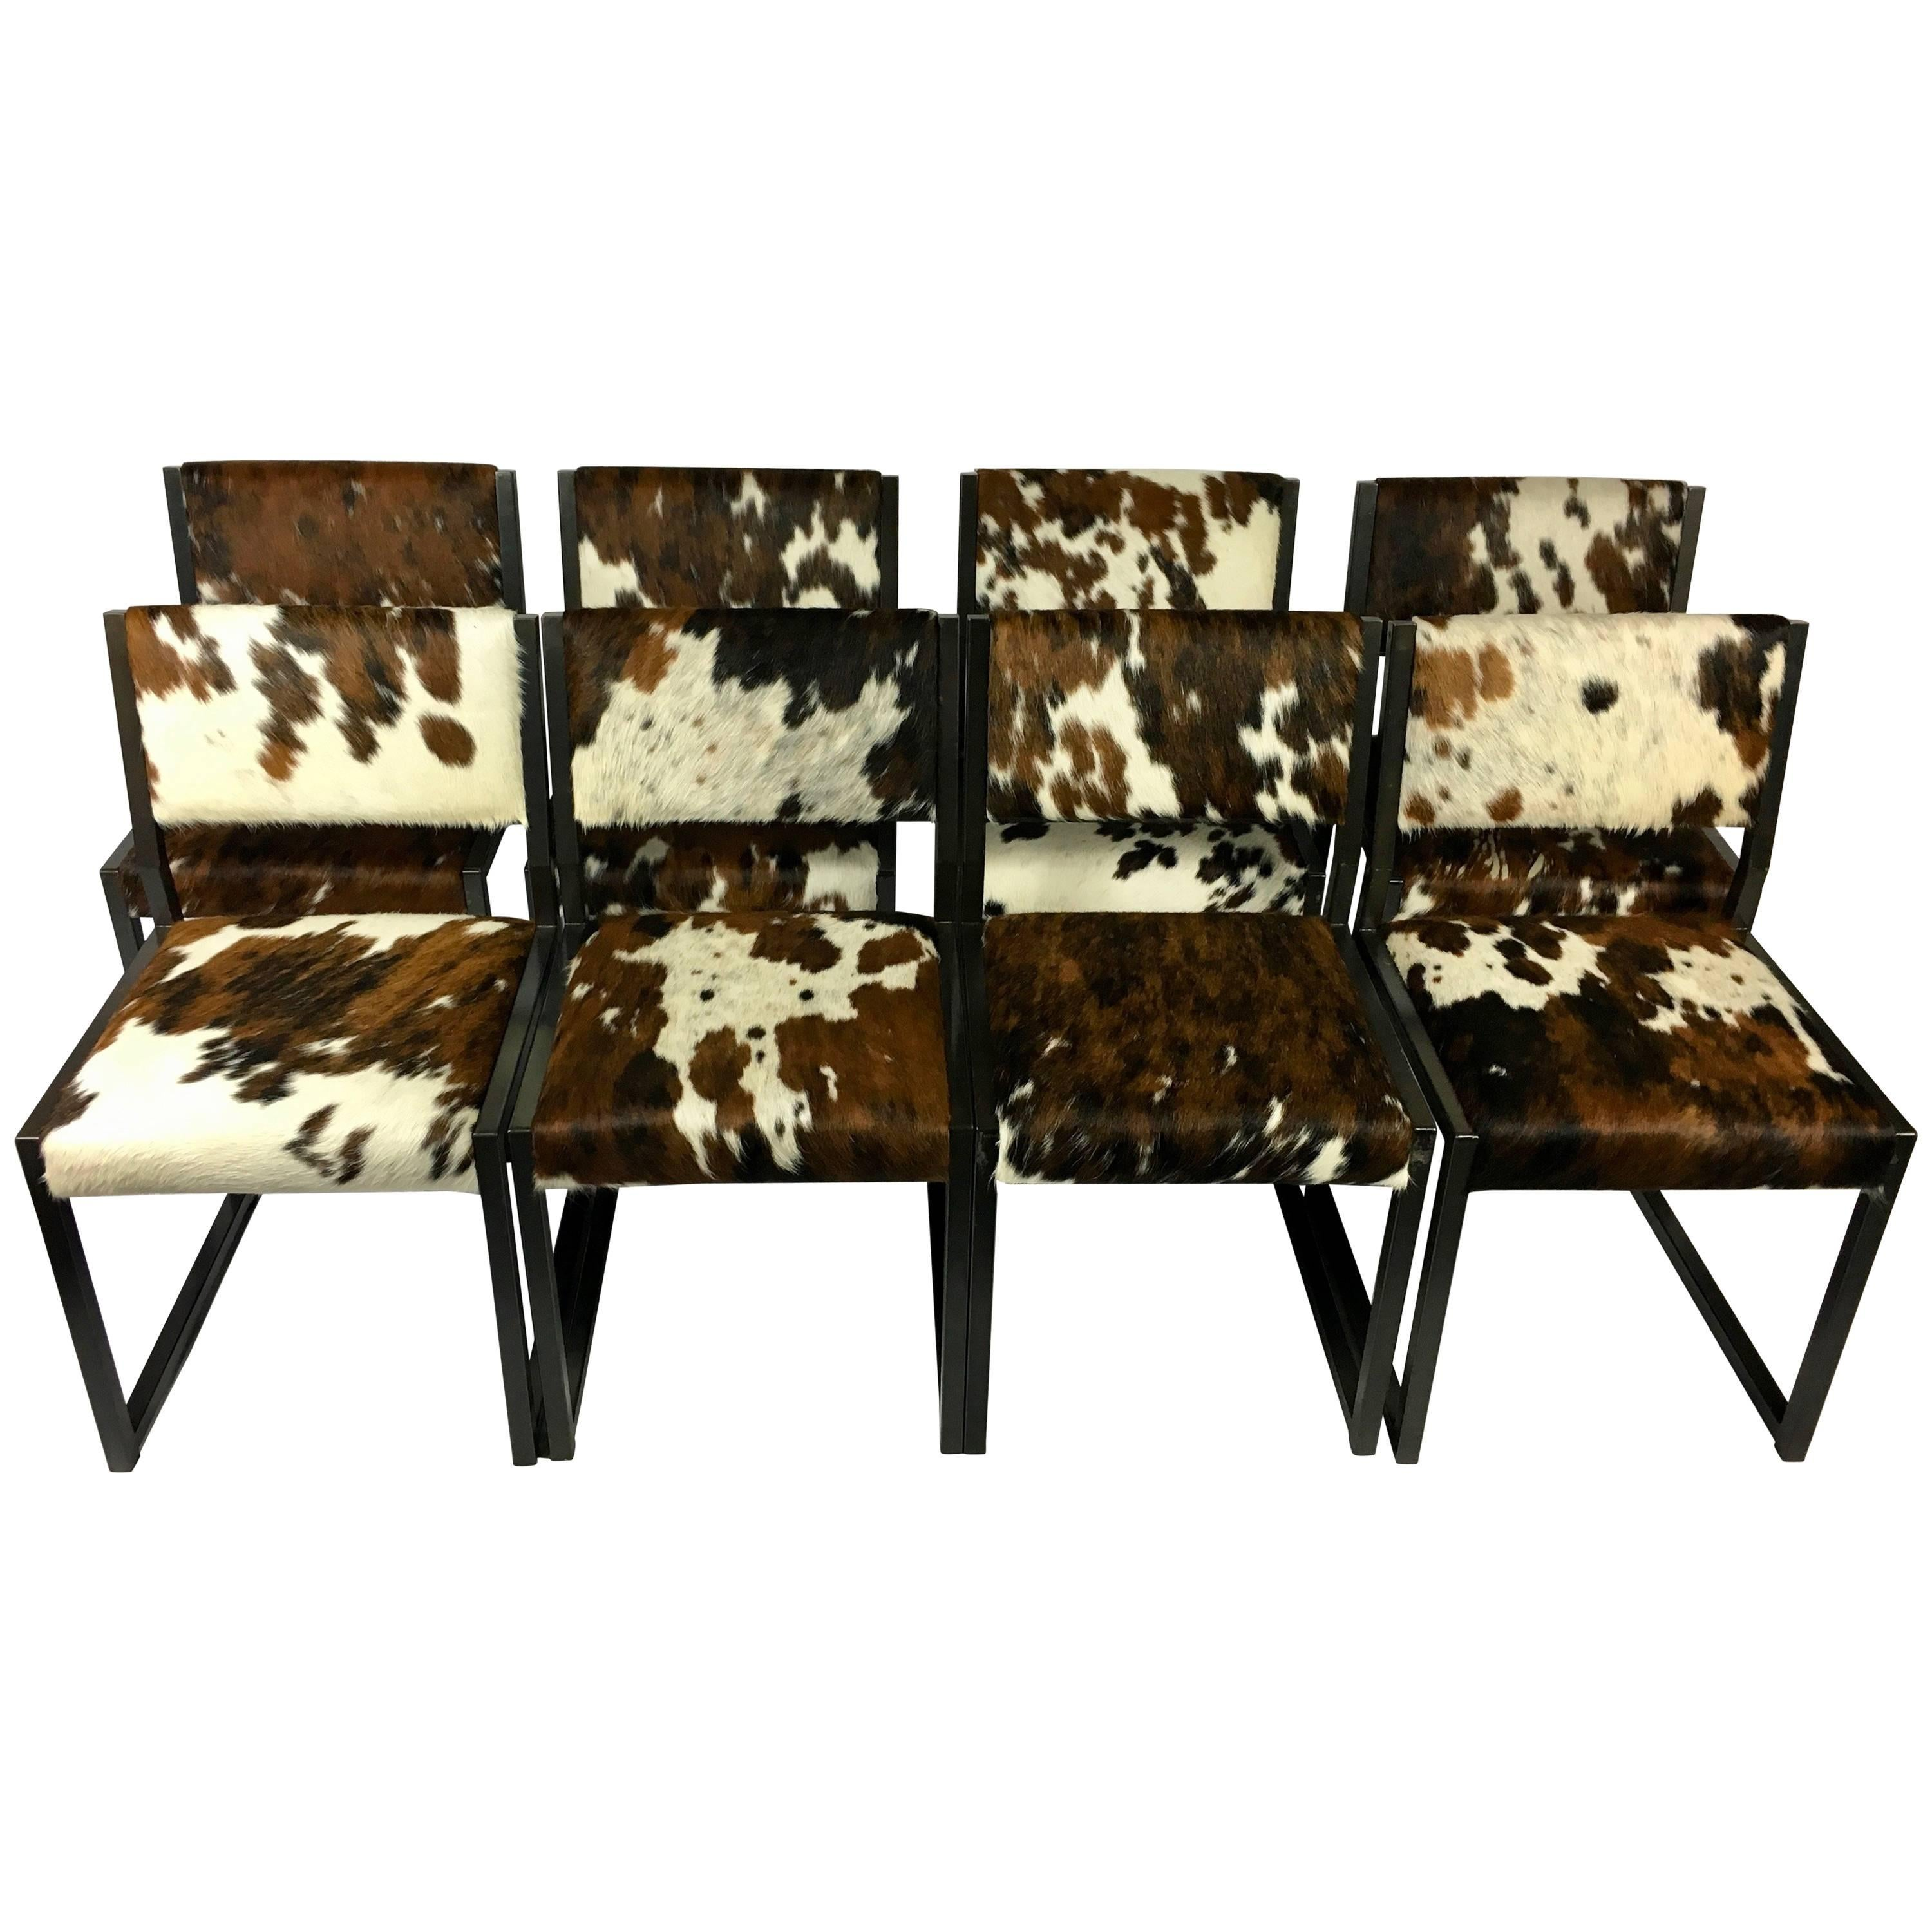 Set Of Eight Pony Skin Dining Chairs, Blackened Steel Frames By Uhuru Design